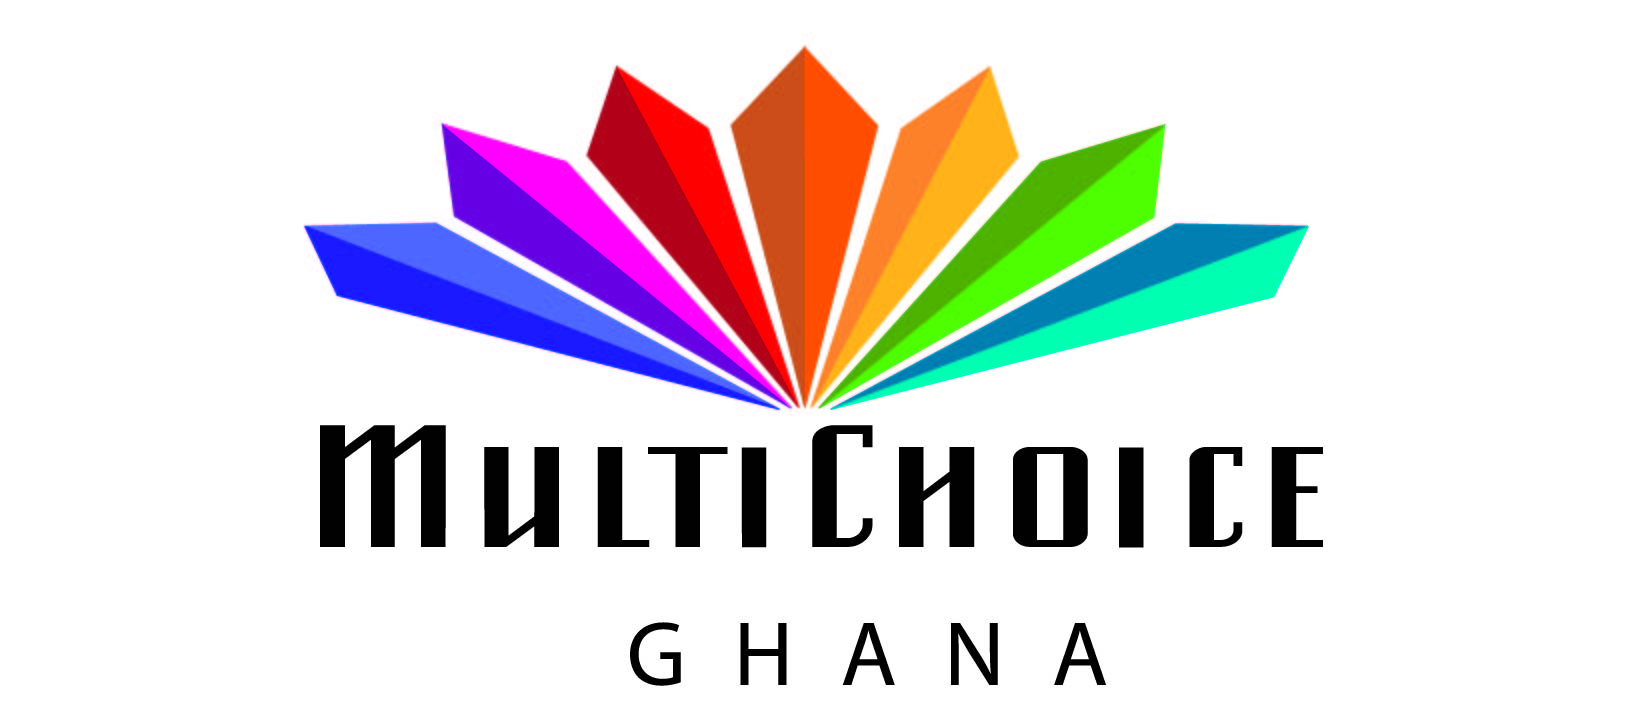 Active DStv and GOtv customers to enjoy Open Viewing of sports and entertainment channels at no extra cost